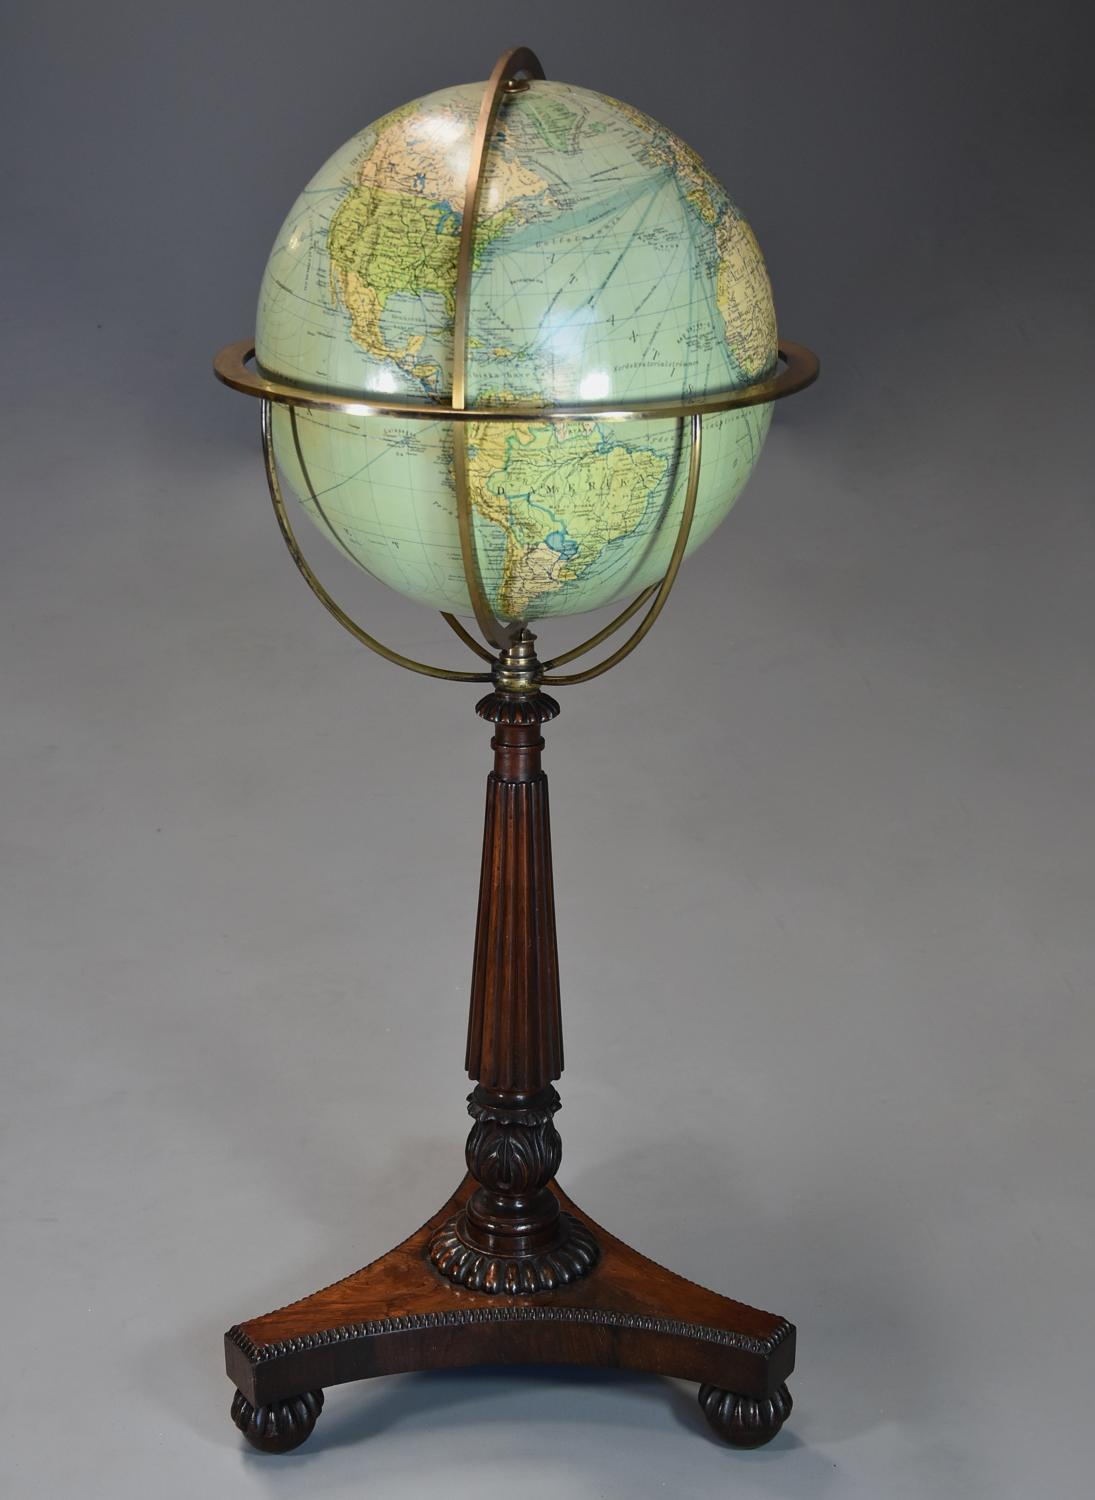 Fine quality 19th century William IVth globe on rosewood stand